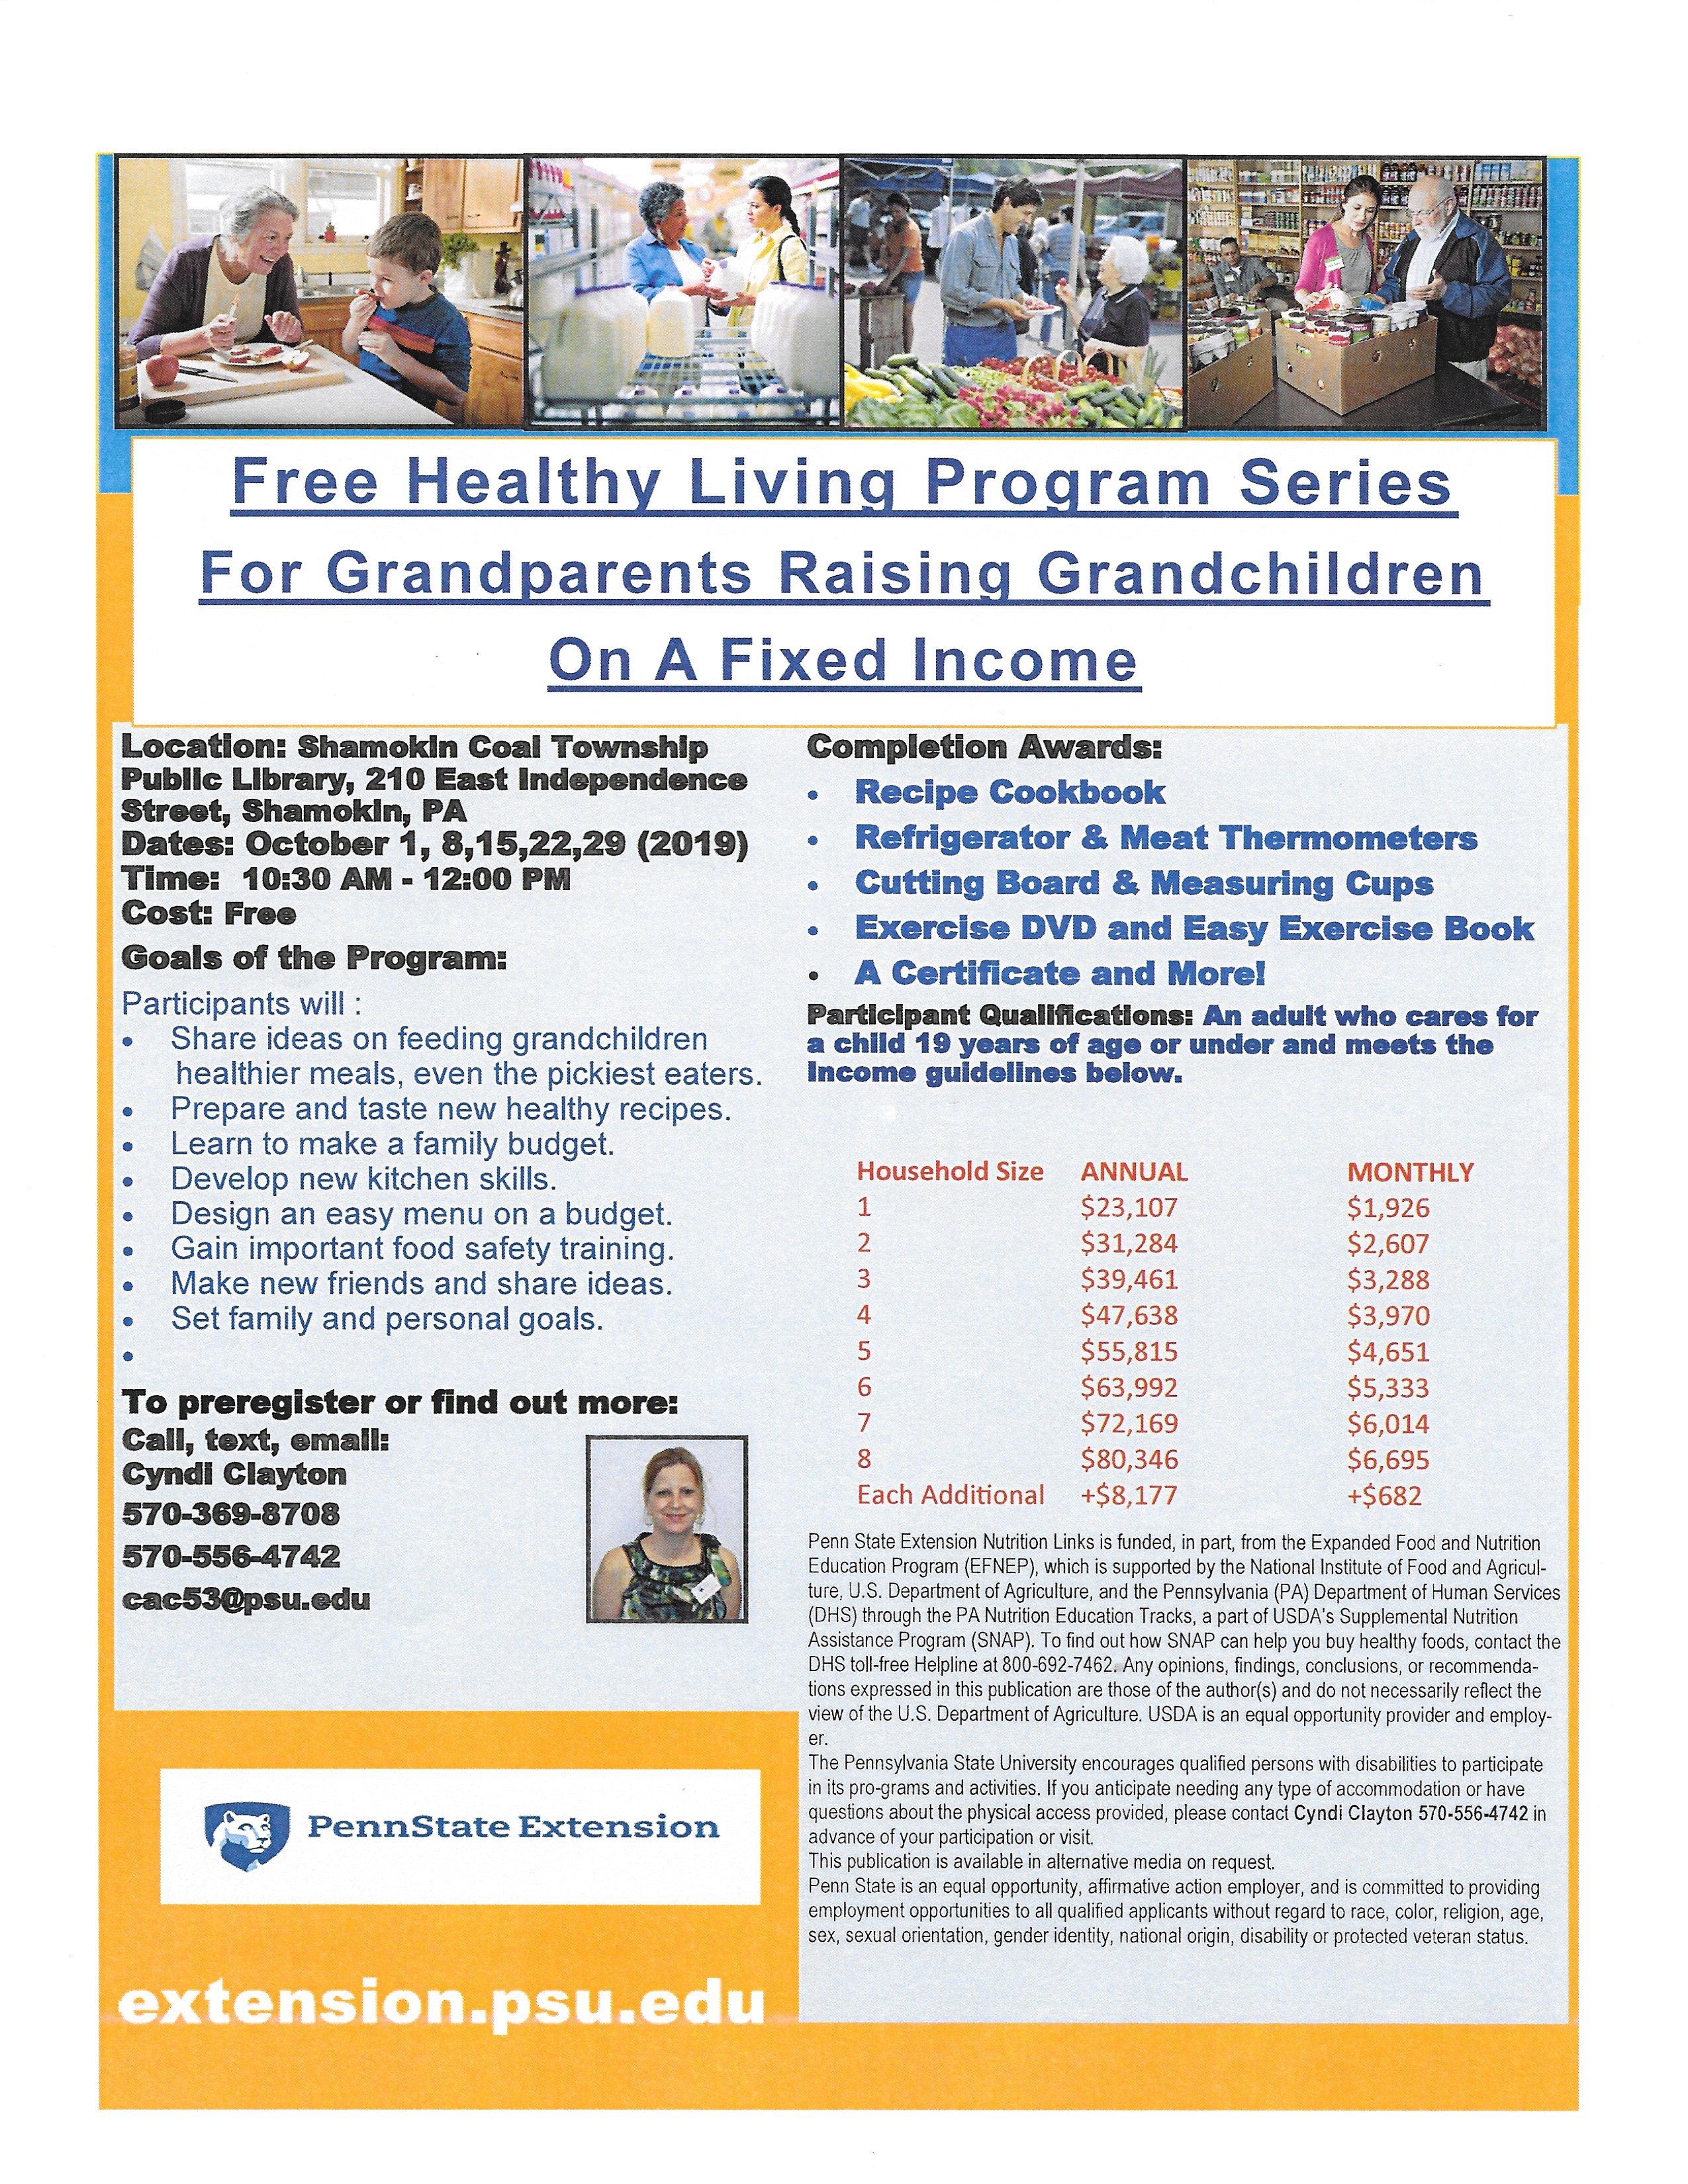 Penn State Extension Grandparent class